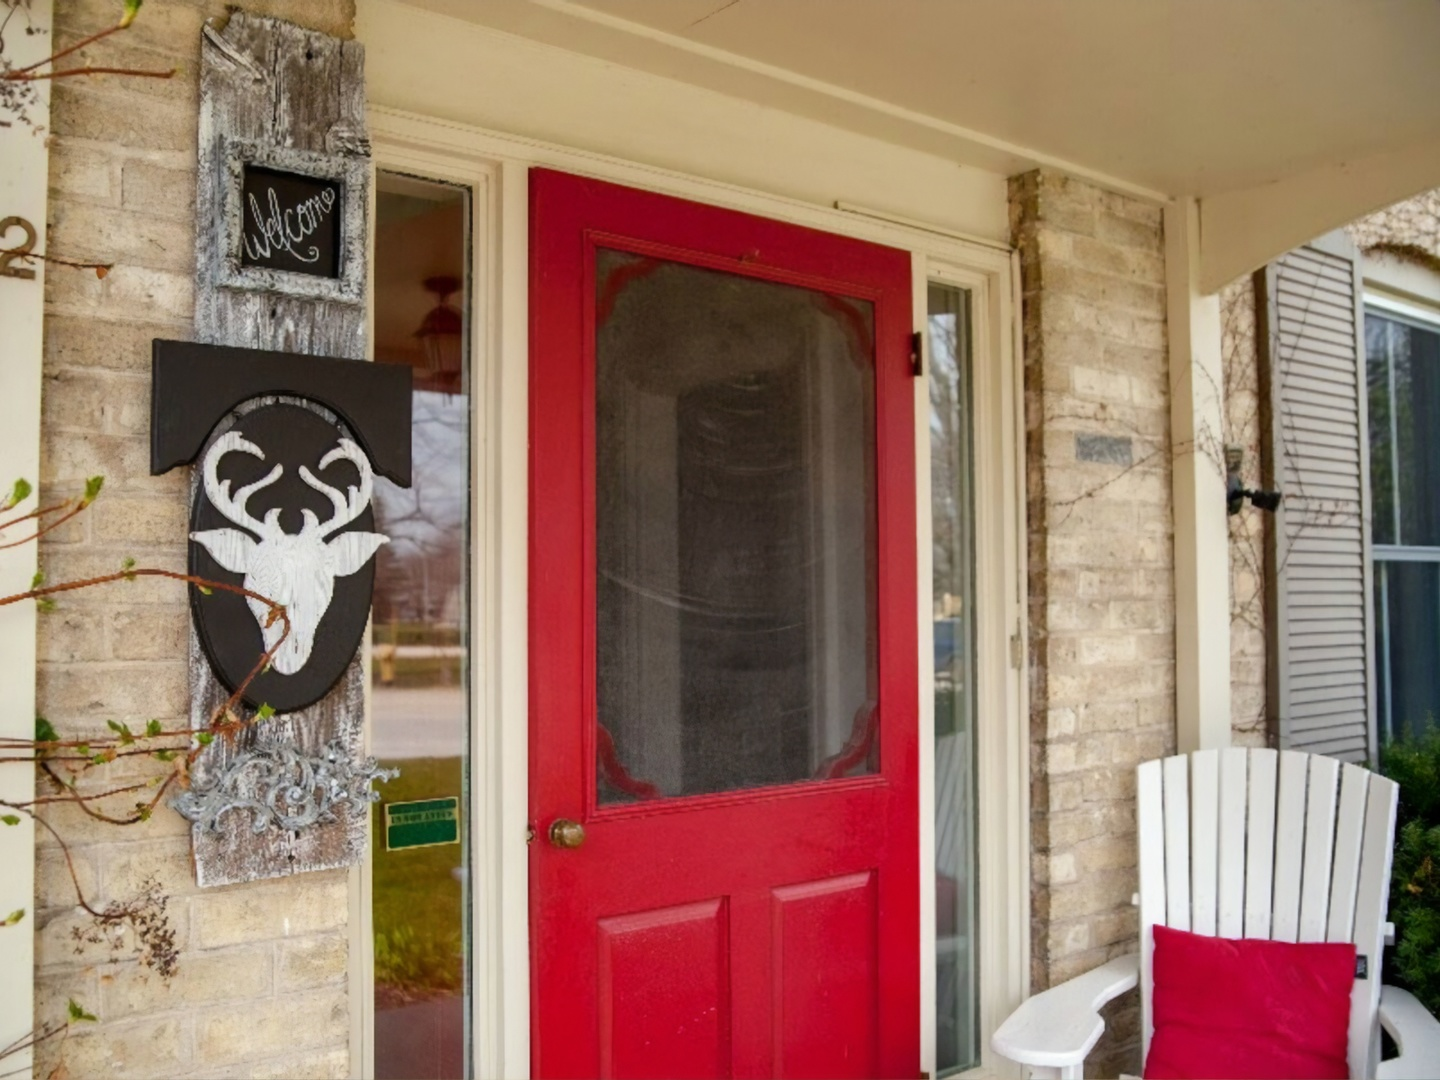 80904 Division Line, Seaforth, ON N0K 1W0, Canada Bed and Breakfast